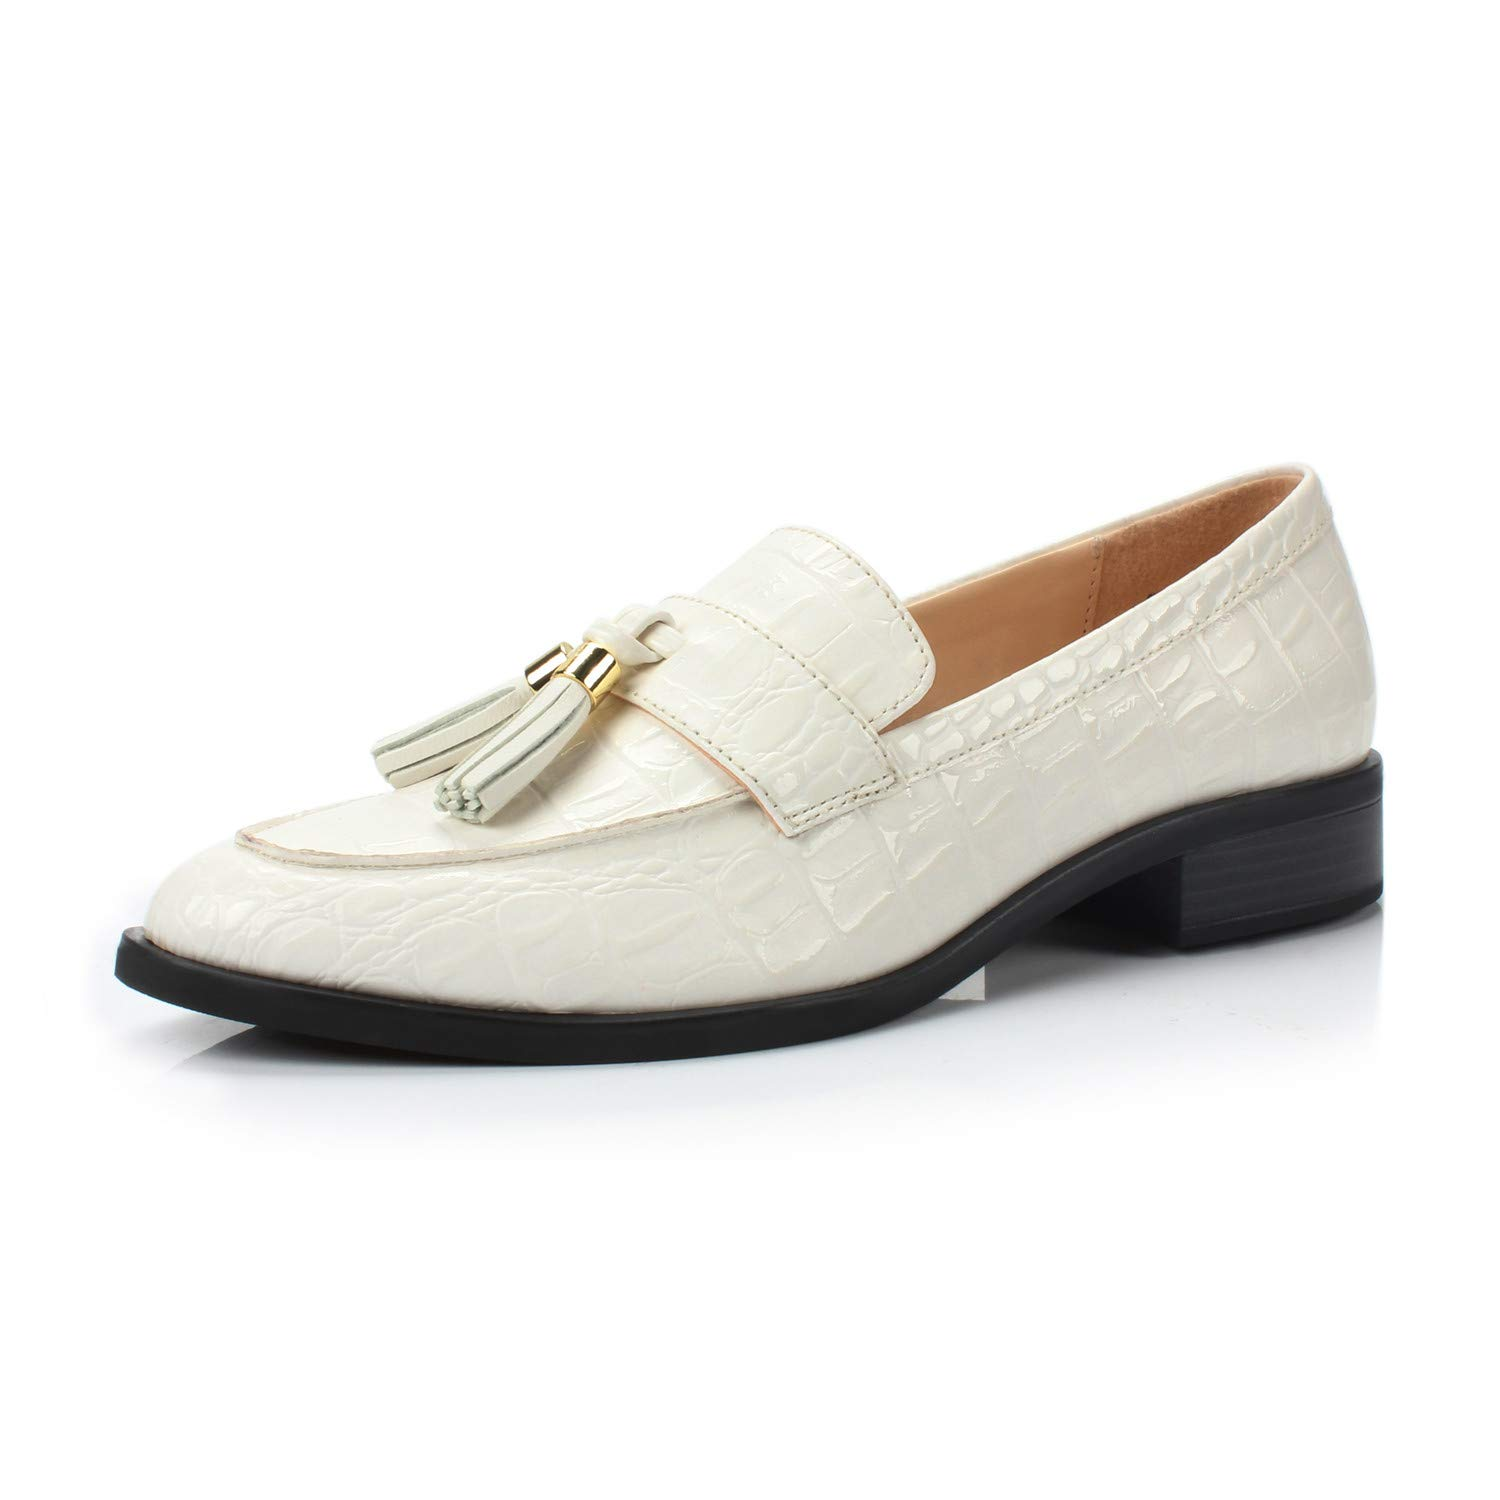 Bertha White Stone DUNION Women's Brandon Chain Decorated Penny Loafers Low Heels Almond Toe Casual Daily shoes